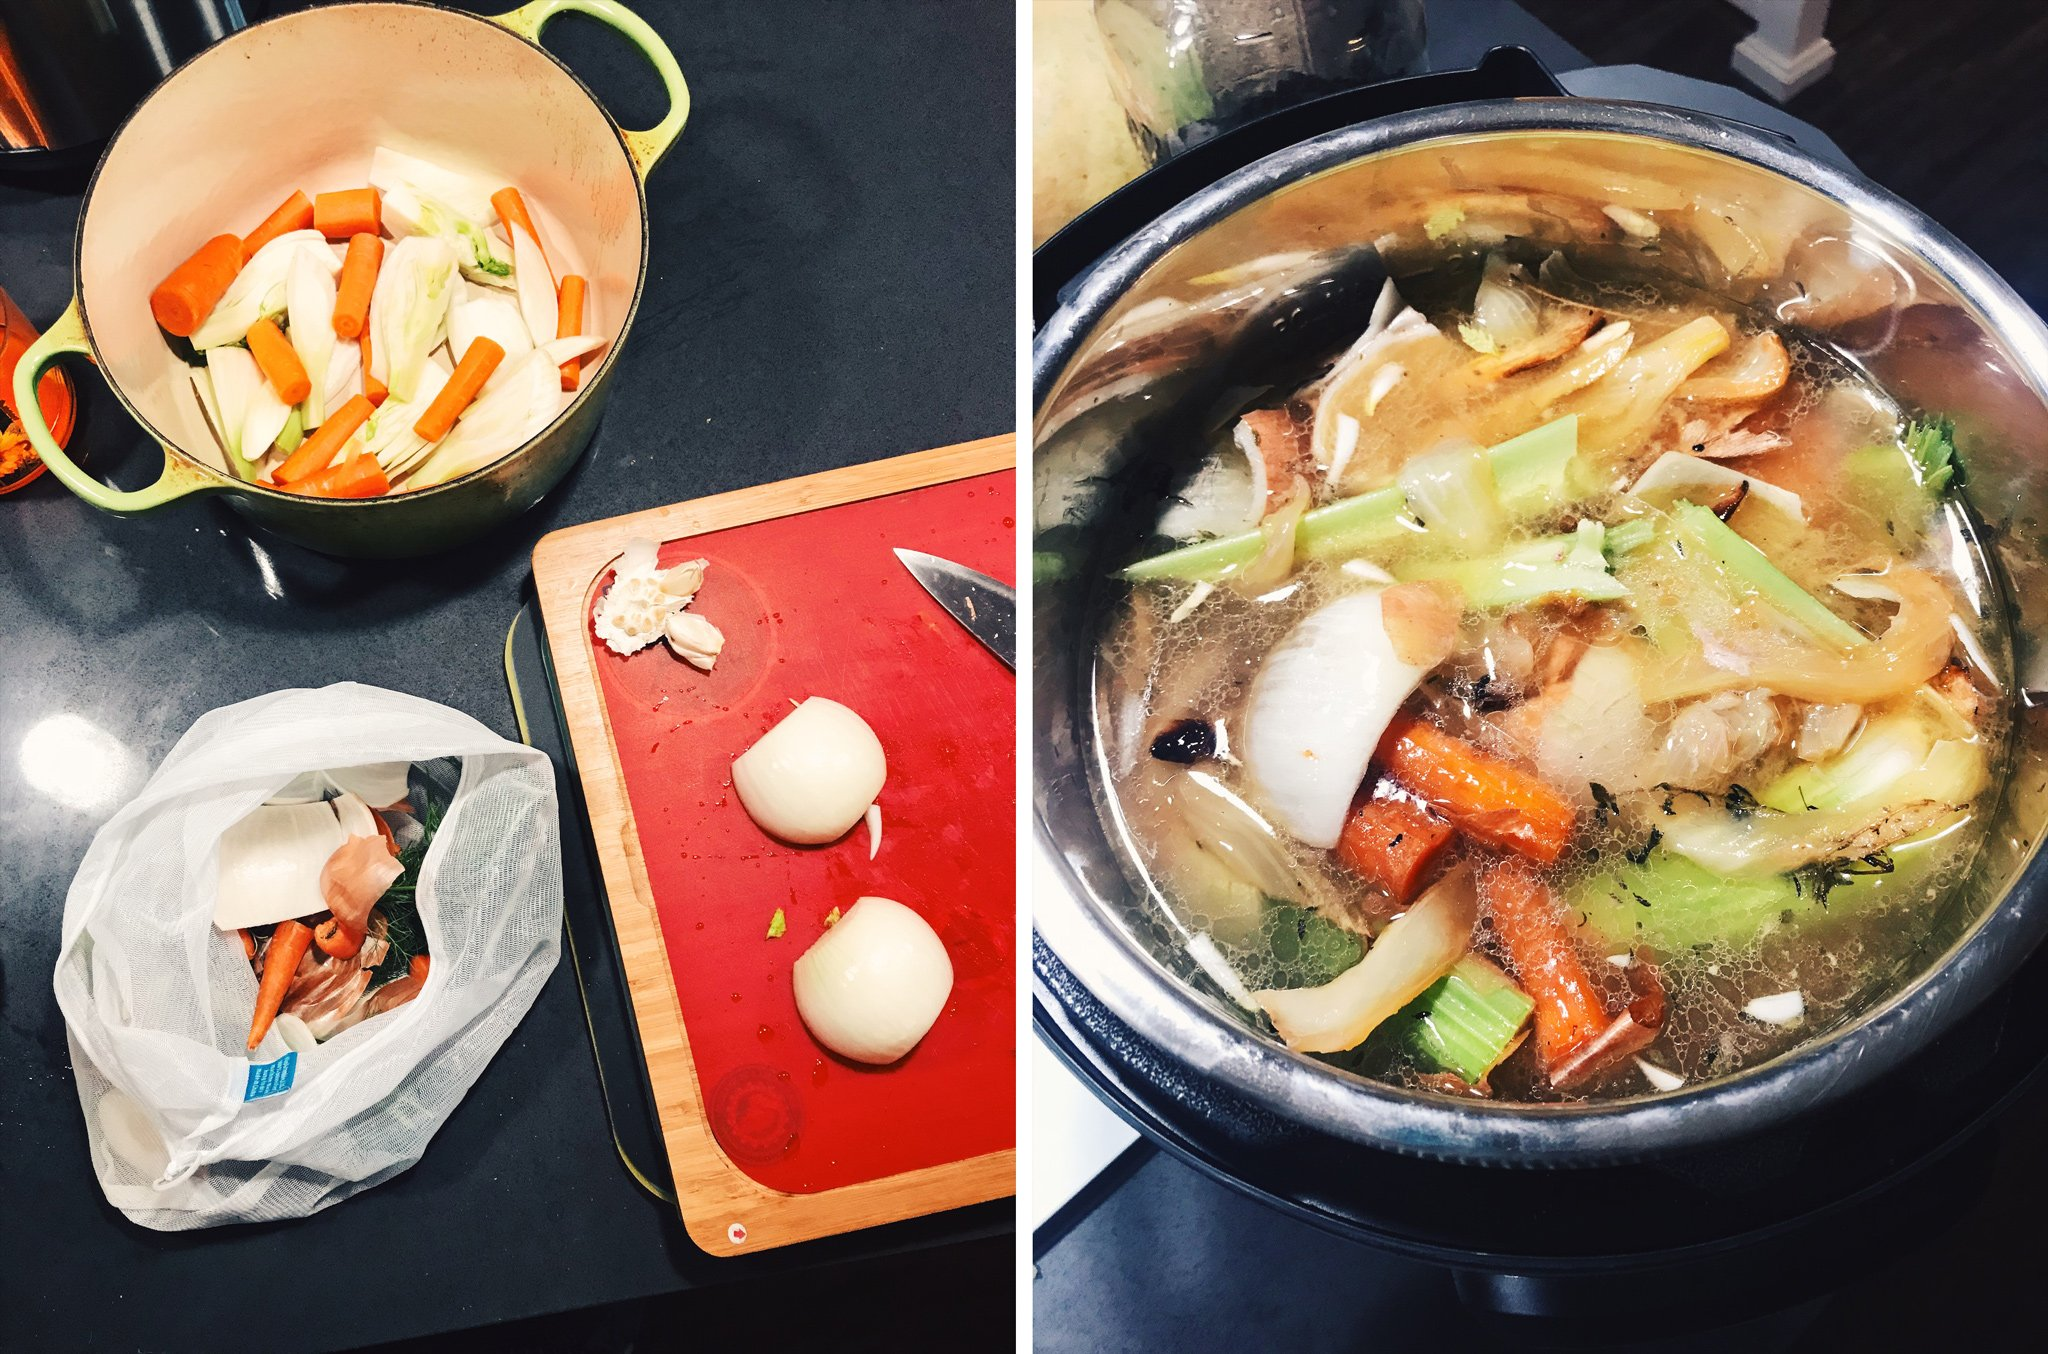 Saved veggies scraps when cutting up vegetables are used in the Instant Pot to make broth.